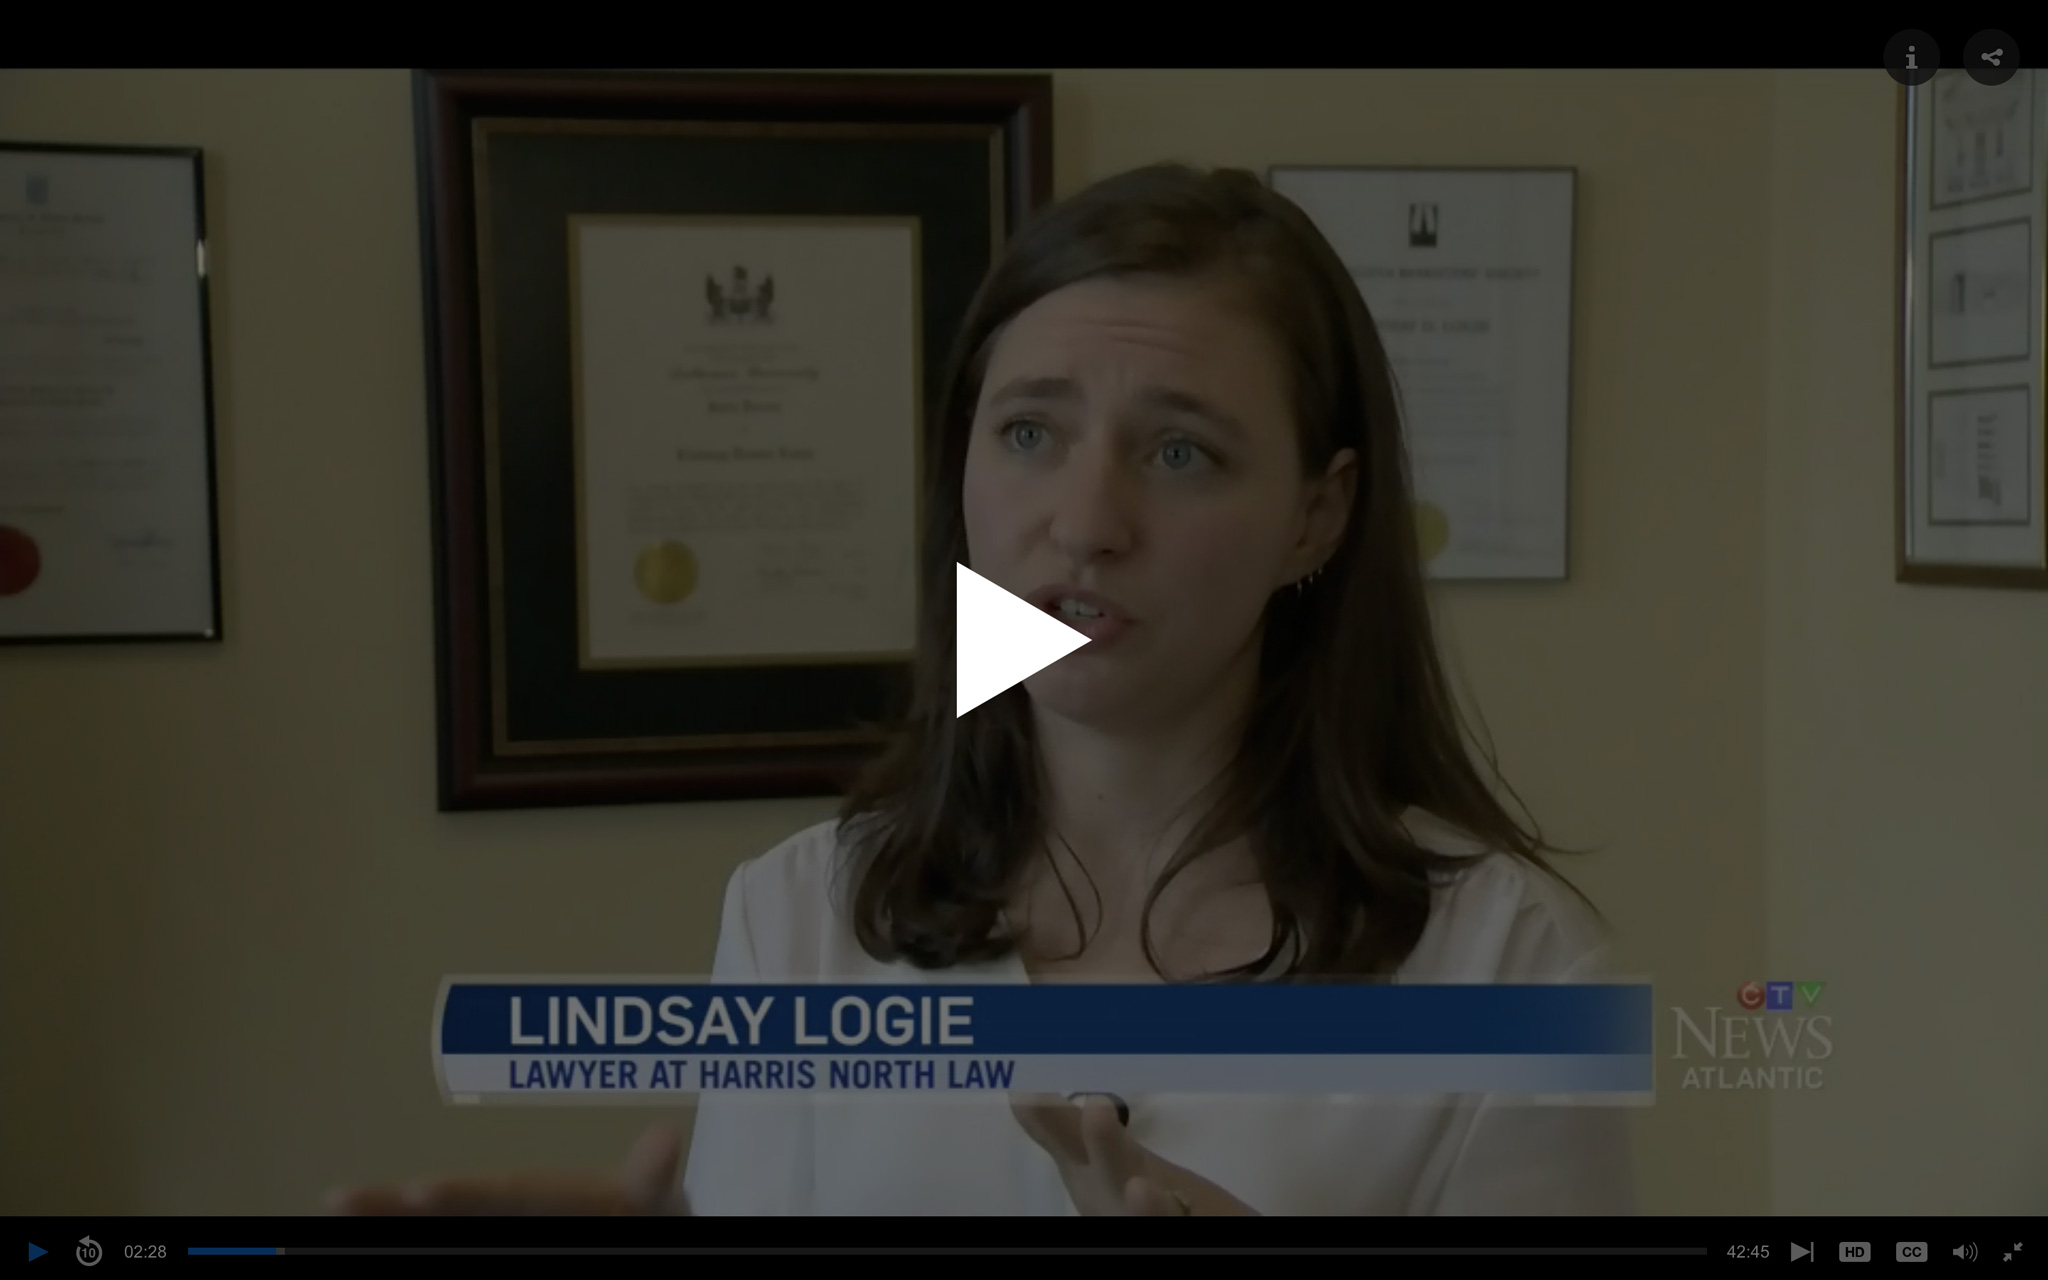 CLICK TO WATCH LINDSAY ON CTV